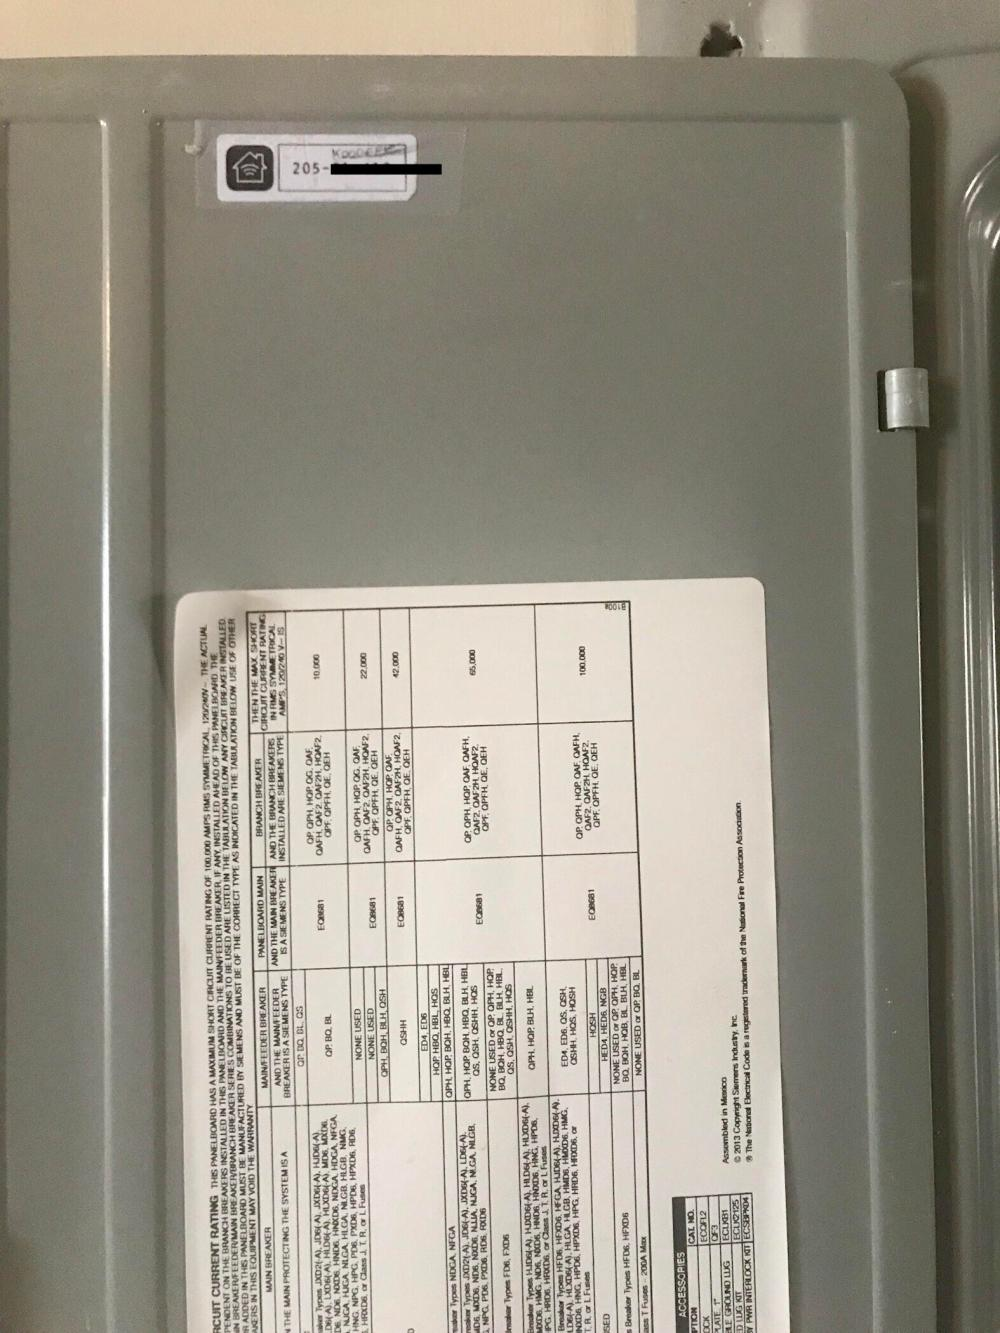 medium resolution of tip layout homekit codes in the fuse box with switch codes next to rh reddit com house electrical fuse boxes house electrical fuse boxes